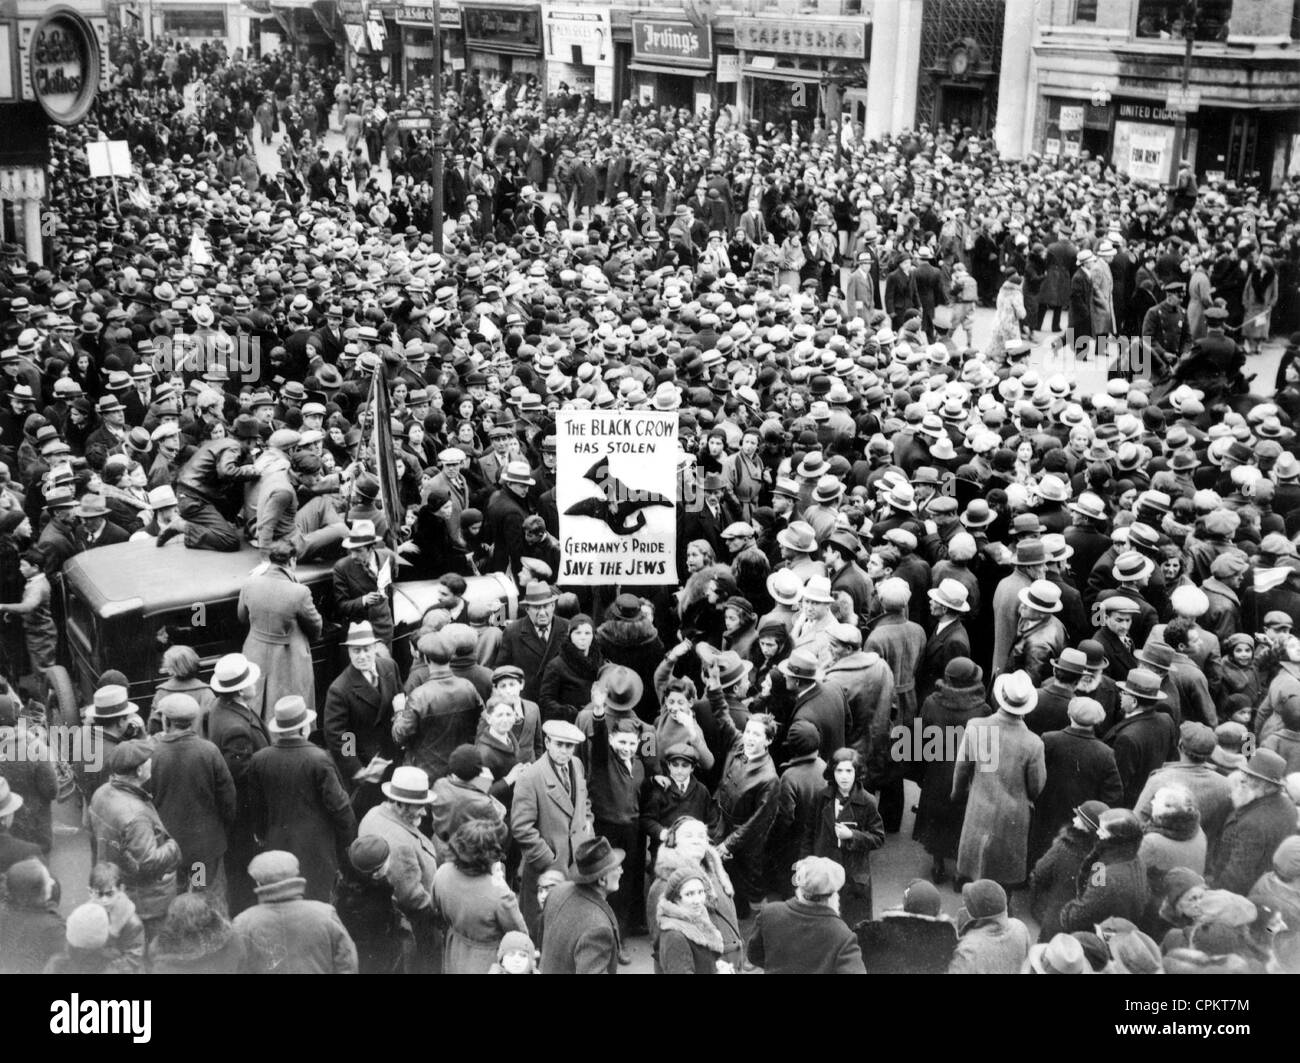 Rally in New York against the persecution of Jews in Germany, 1933 - Stock Image